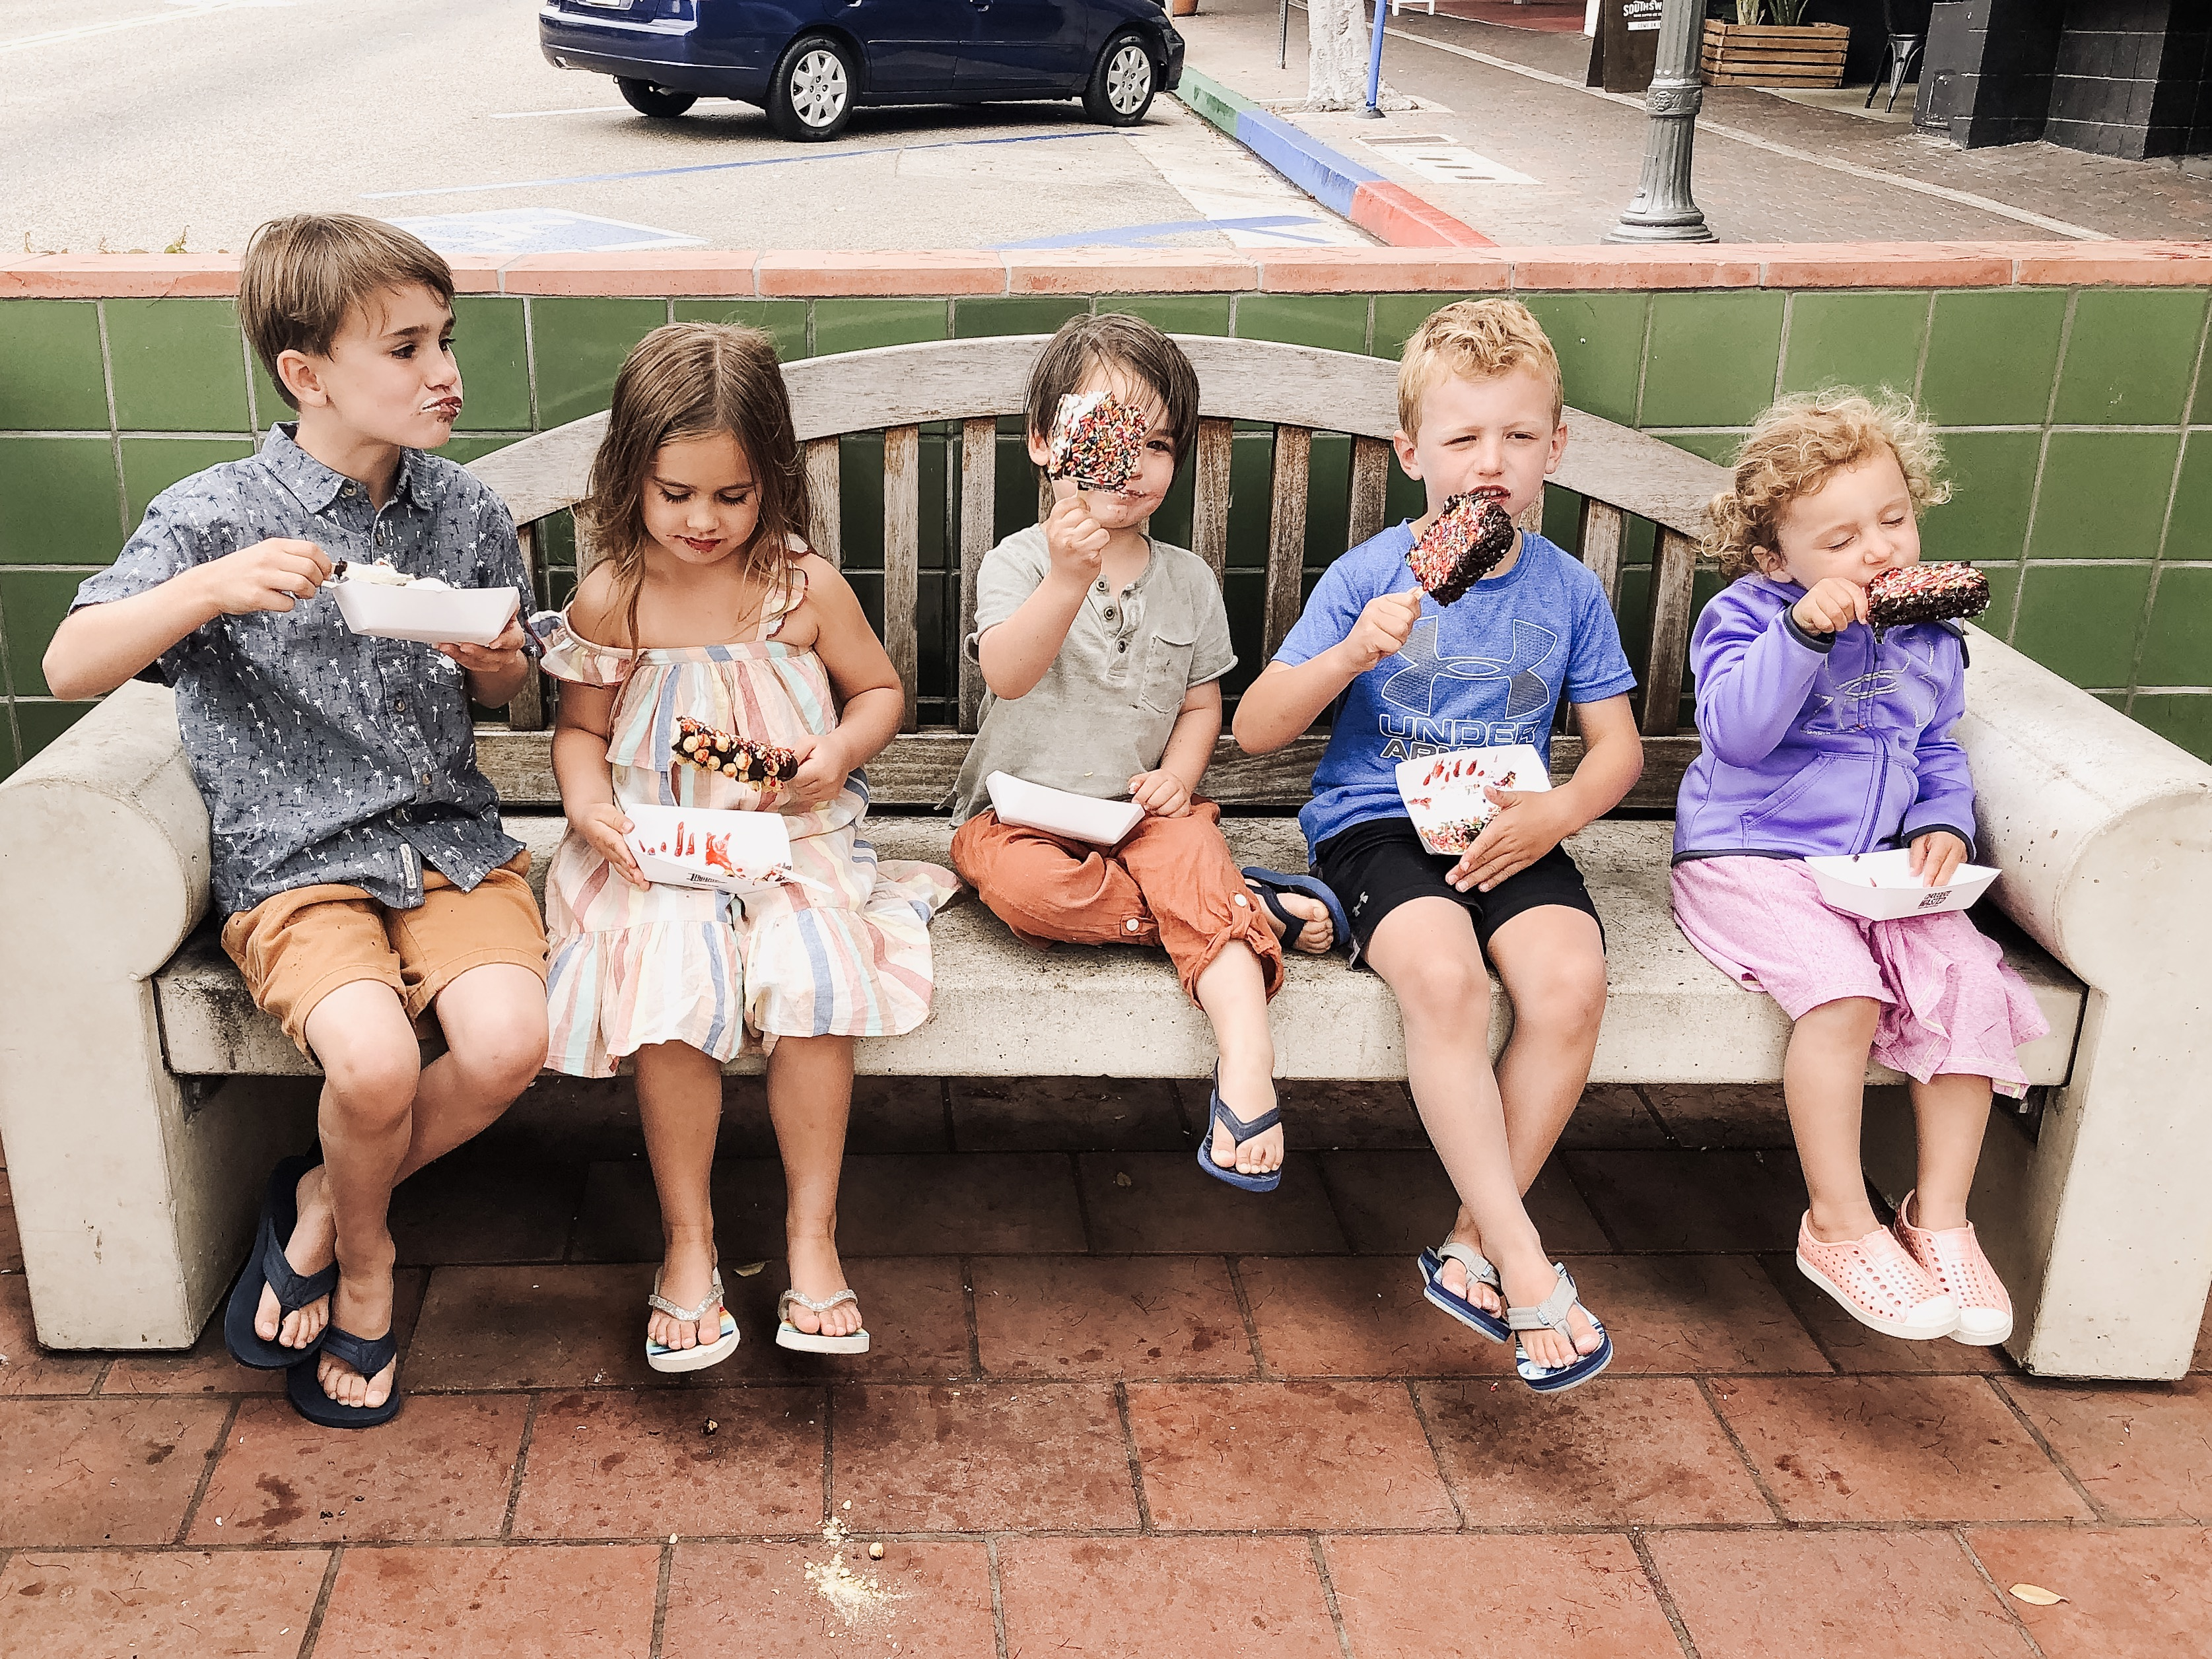 5 kids eating ice cream in a beach town, california